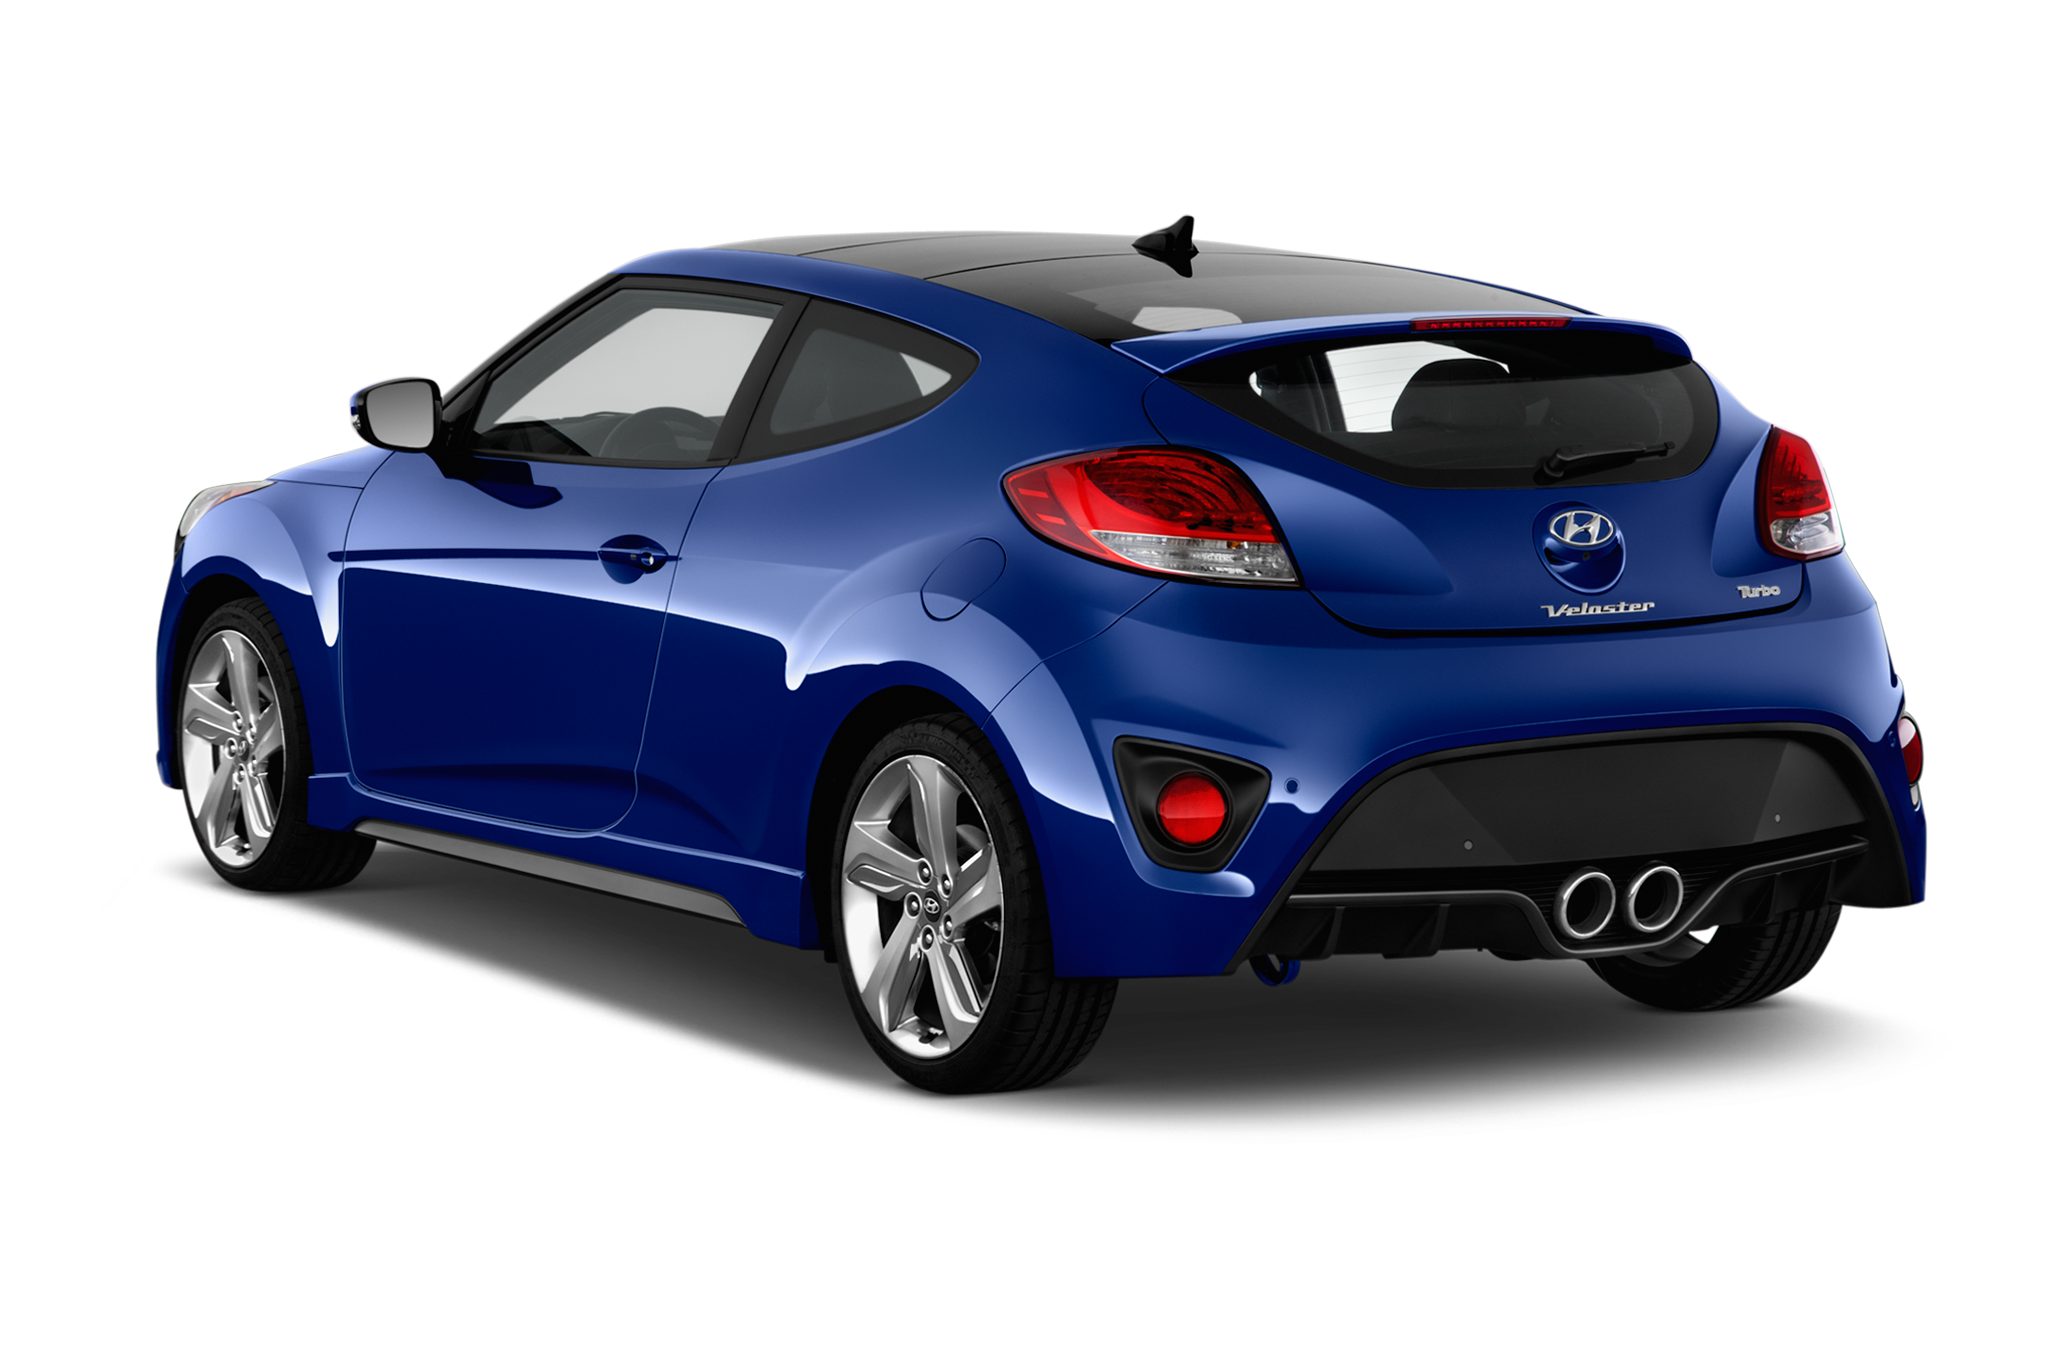 wallpaper spec cool cars x px turbo hyundai veloster download r original image